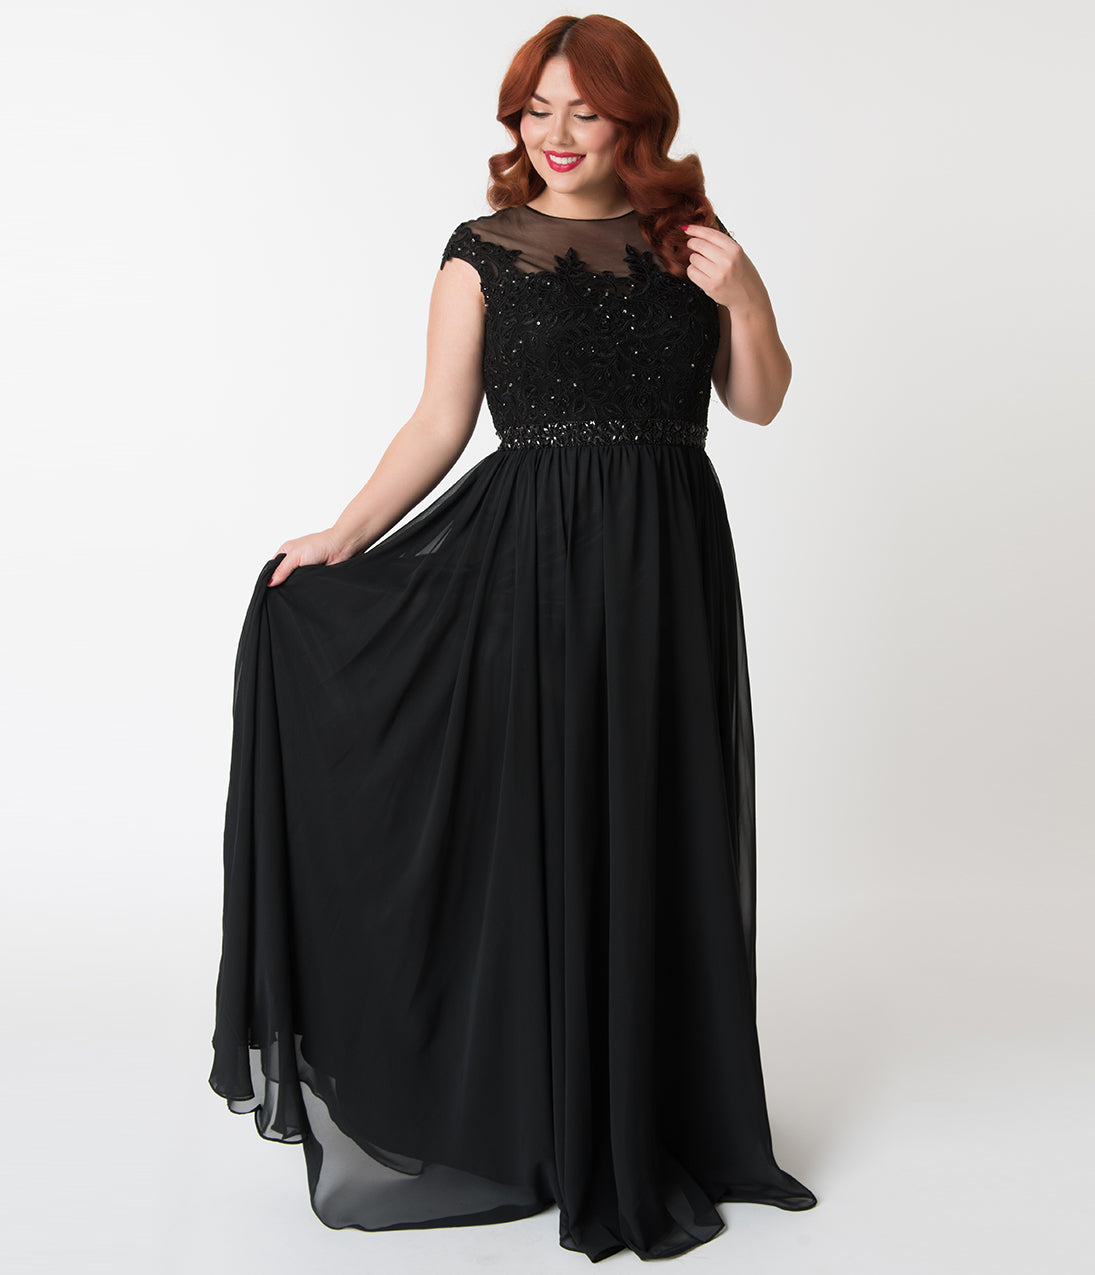 1930s Art Deco Plus Size Dresses | Tea Dresses, Party Dresses Plus Size Black Embellished Lace  Chiffon Cap Sleeve Prom Gown $142.00 AT vintagedancer.com